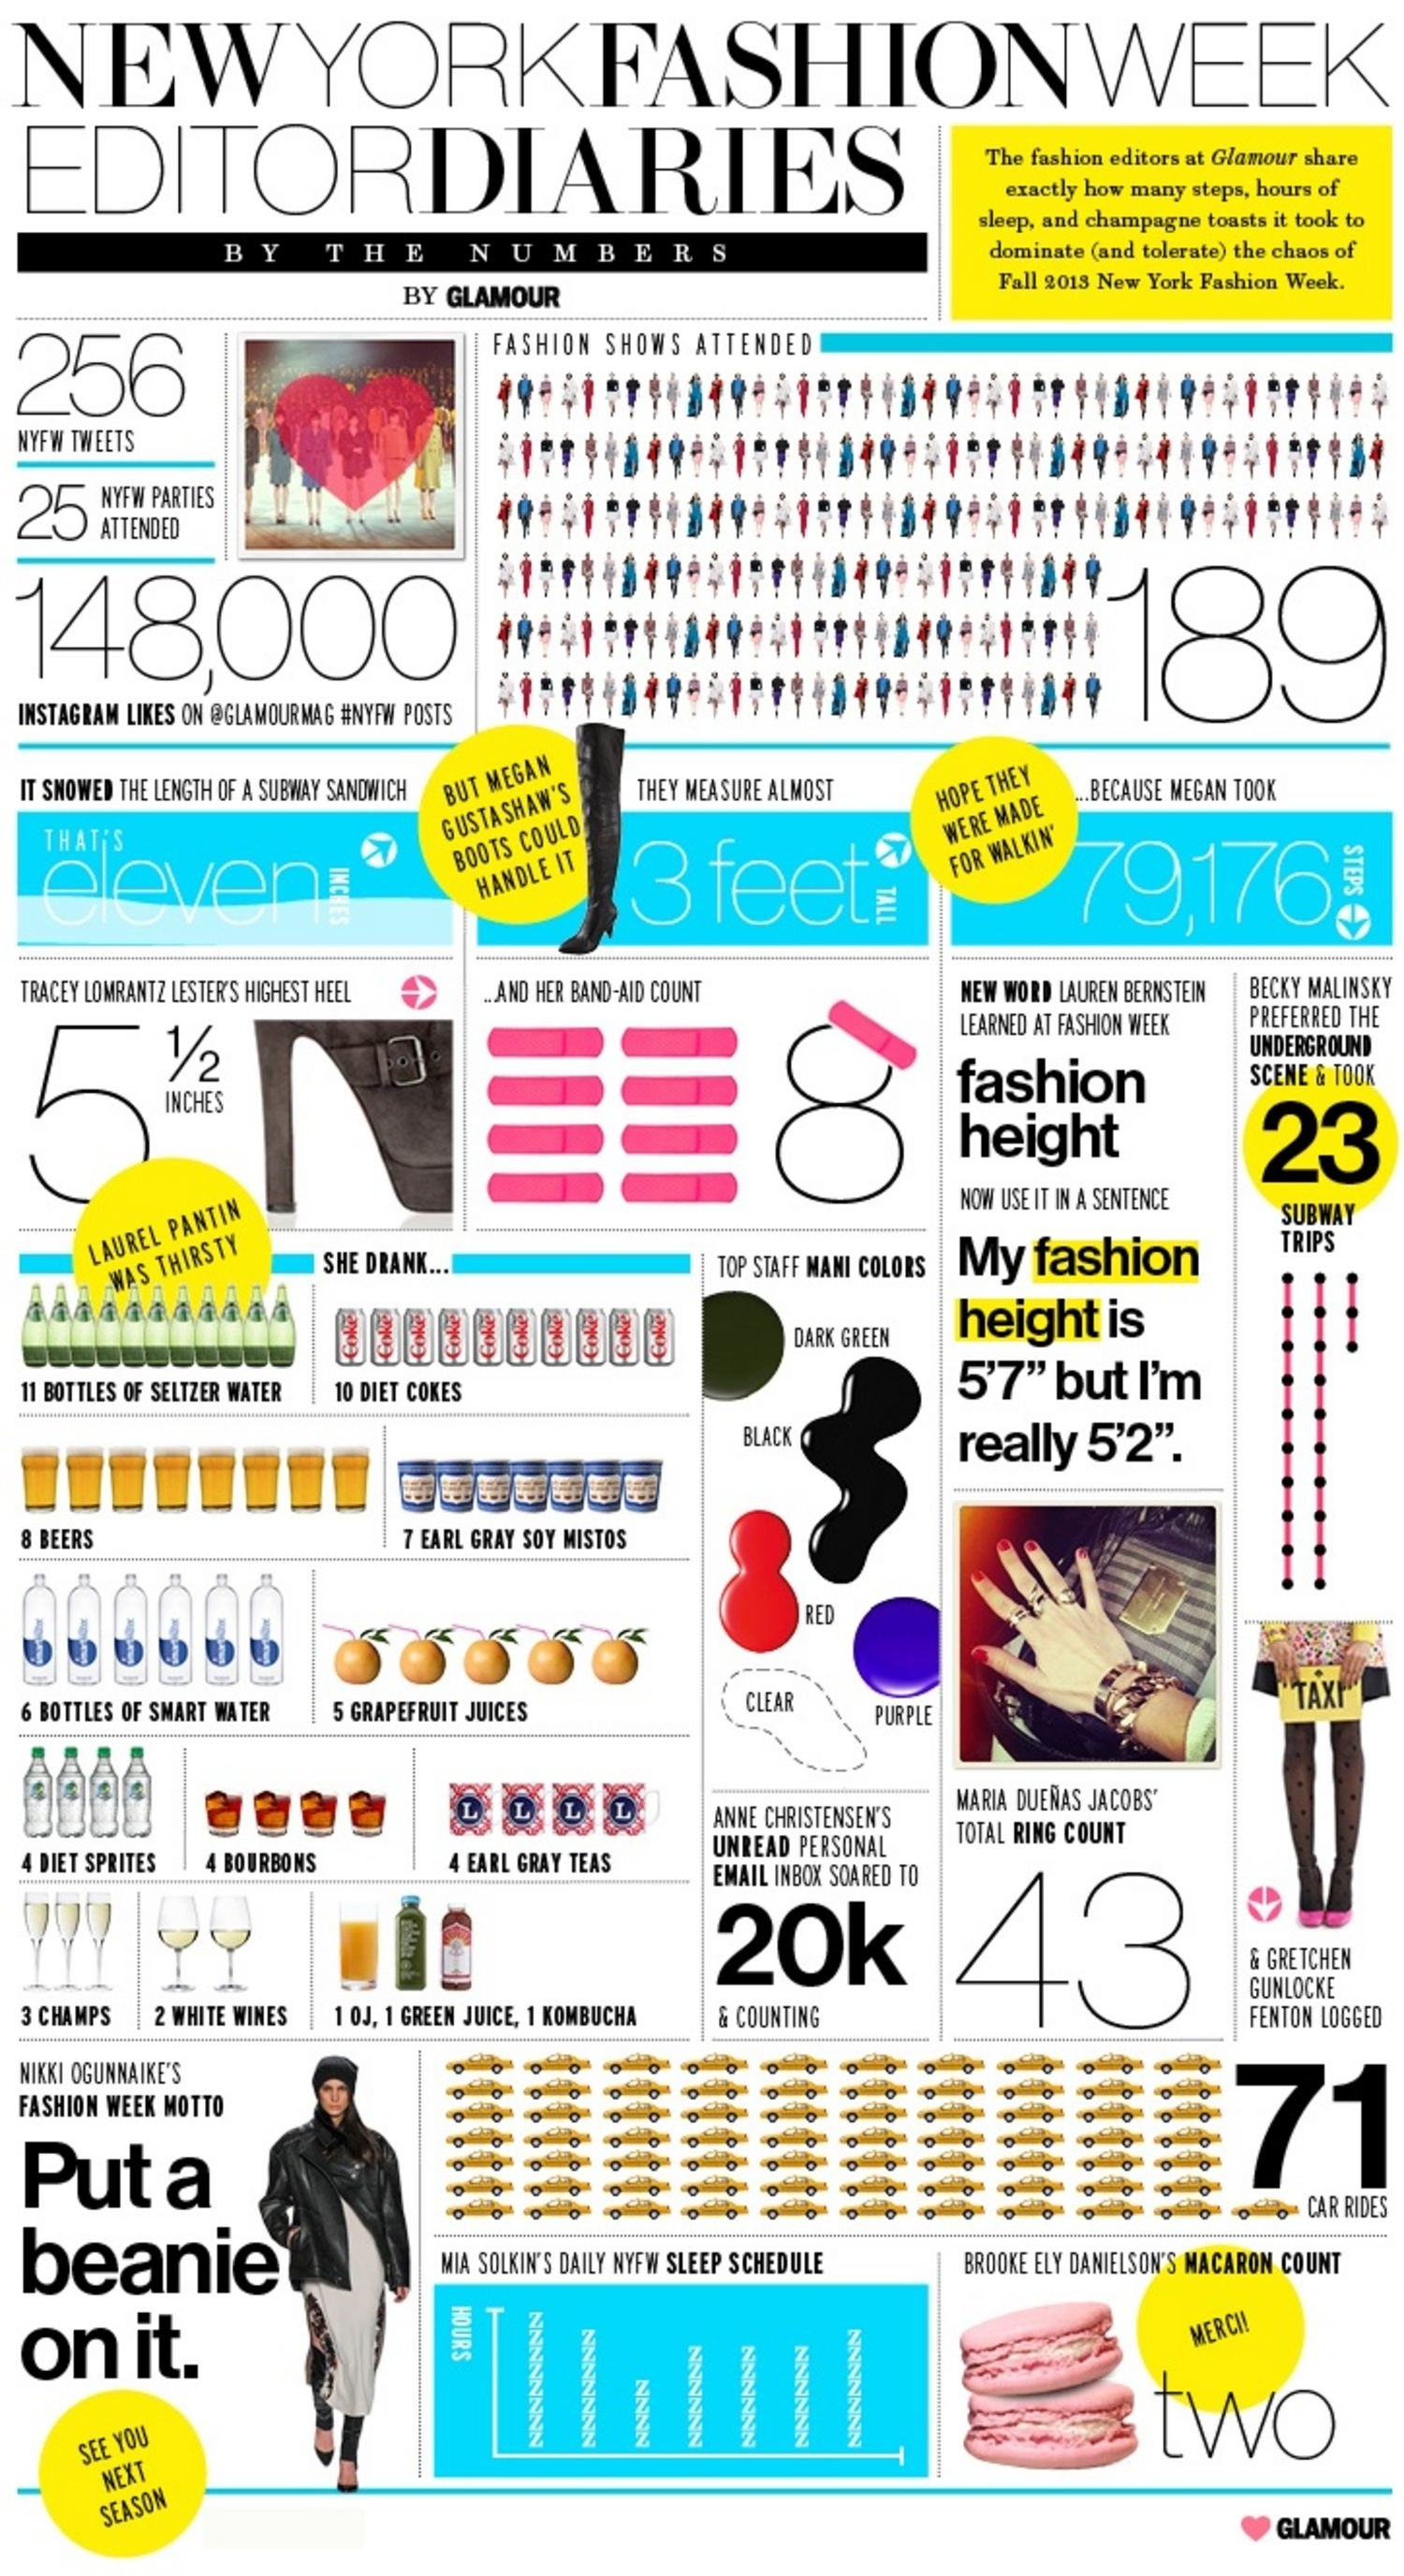 I asked the editors at Glamour to collect specific information about their lives during fashion week to create this graphic.